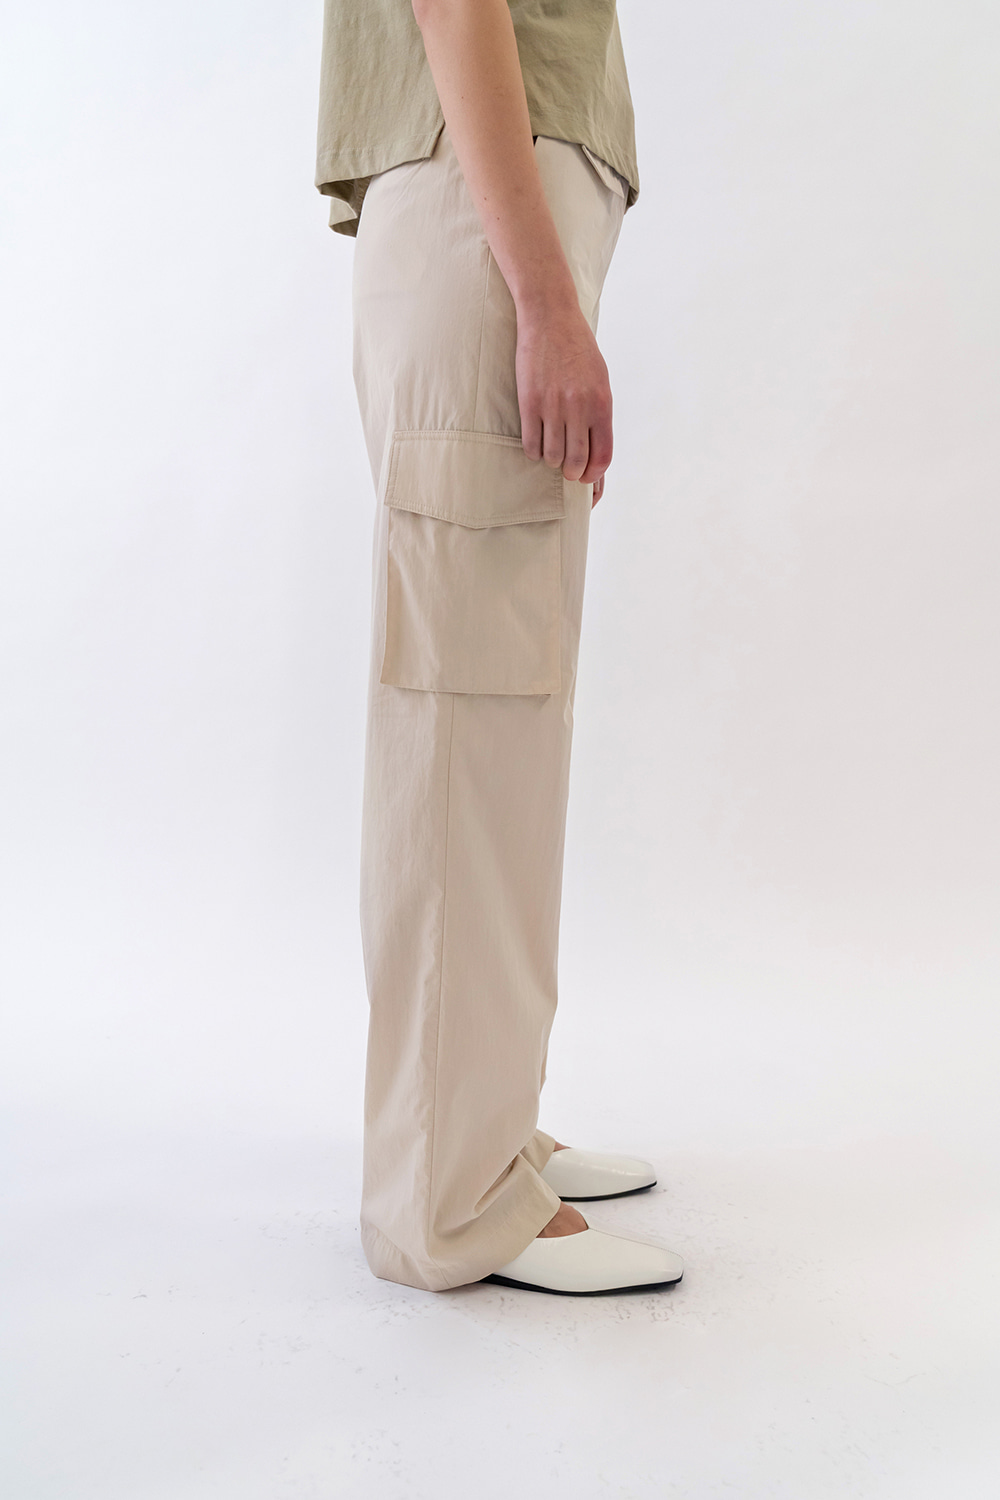 One Pocket Cargo Pants Women [Cream]